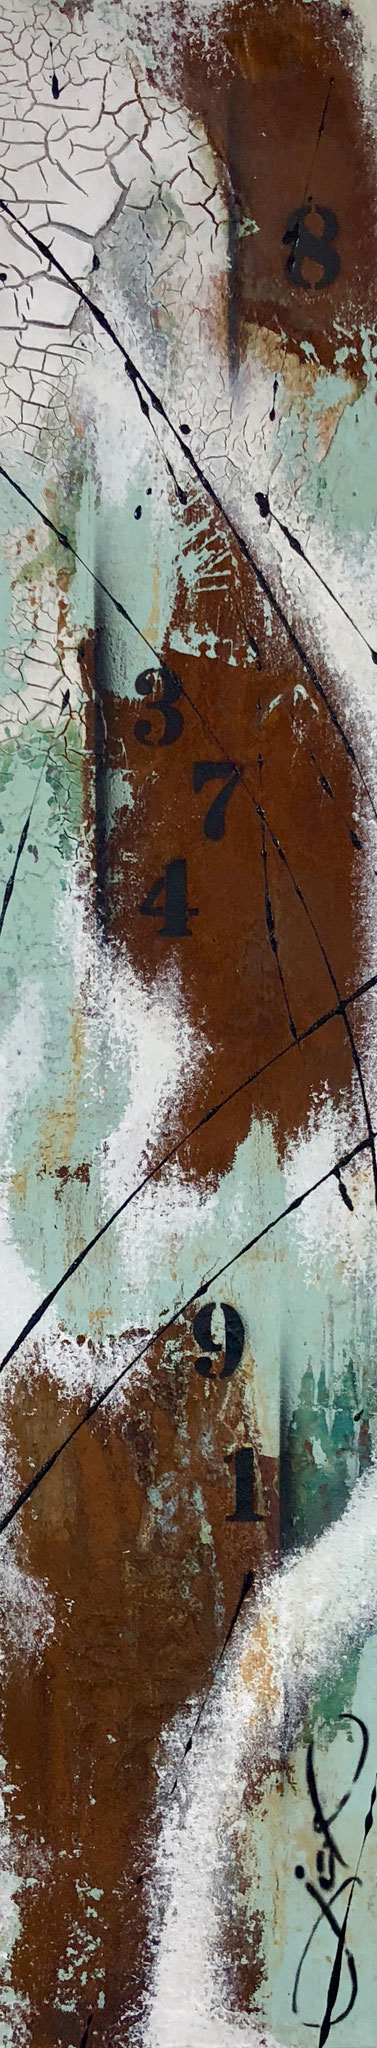 100 x 20 cm / fading numbers / Canvas and Mixmedia / 2017